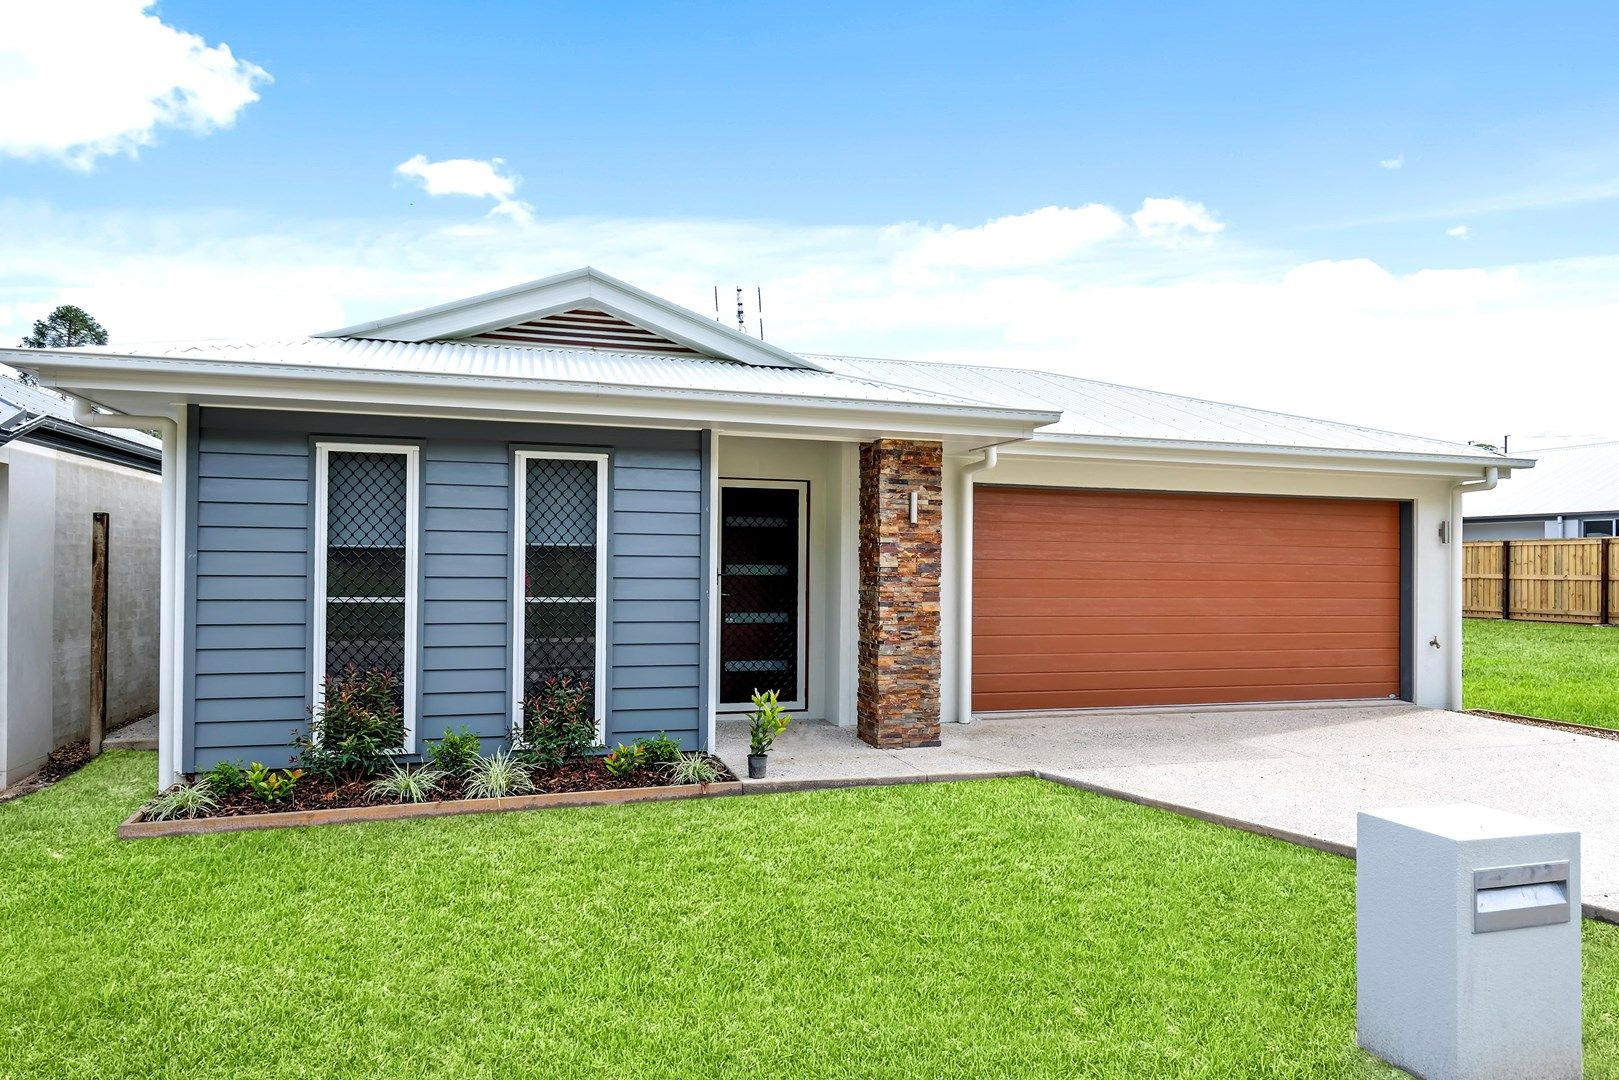 LOT 160 New Road, Holmview QLD 4207, Image 0